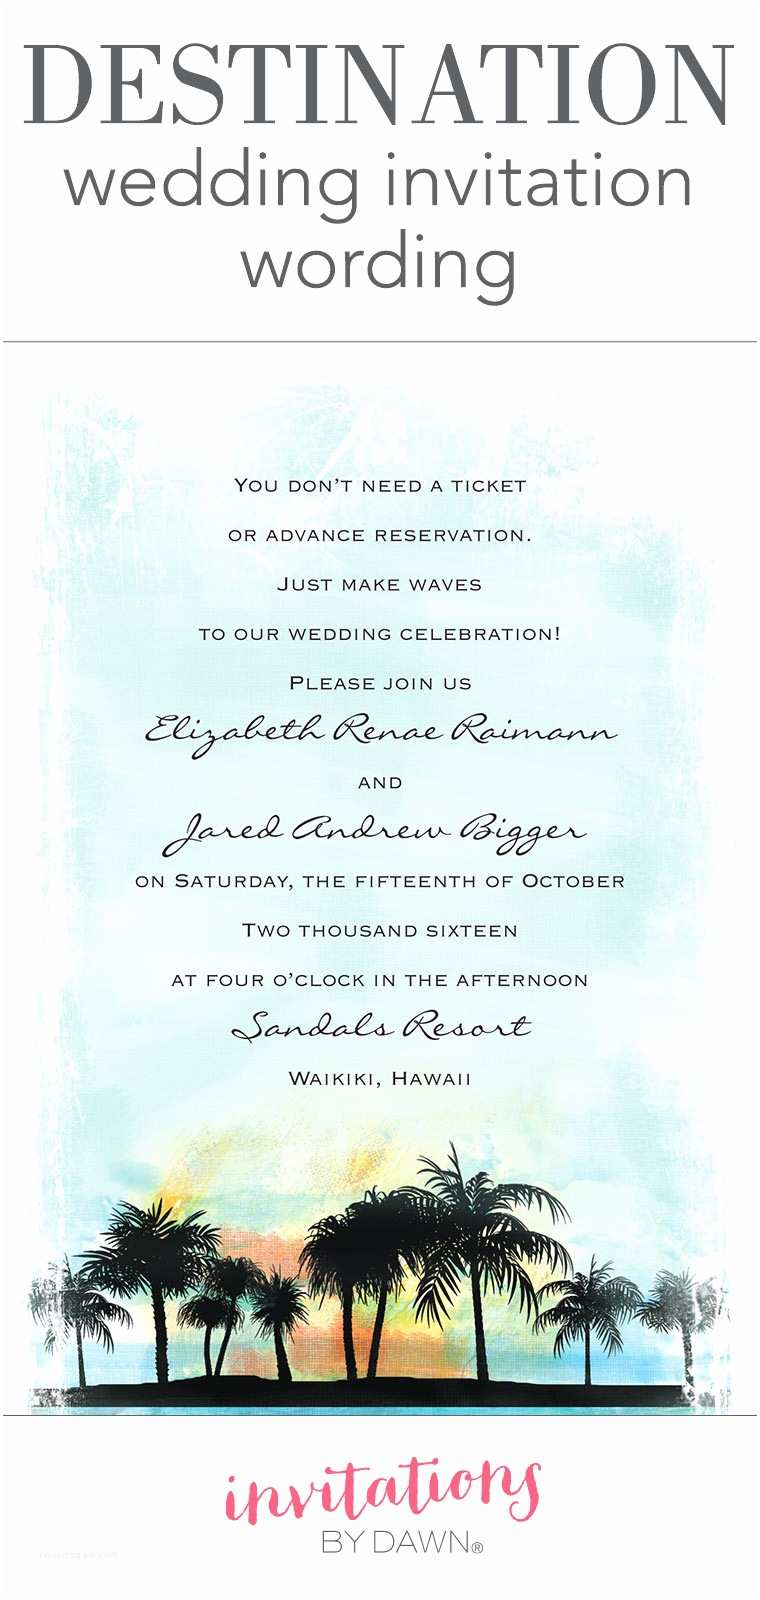 Elegant Wedding Invitation Wording top Collection Destination Wedding Invitation Wording